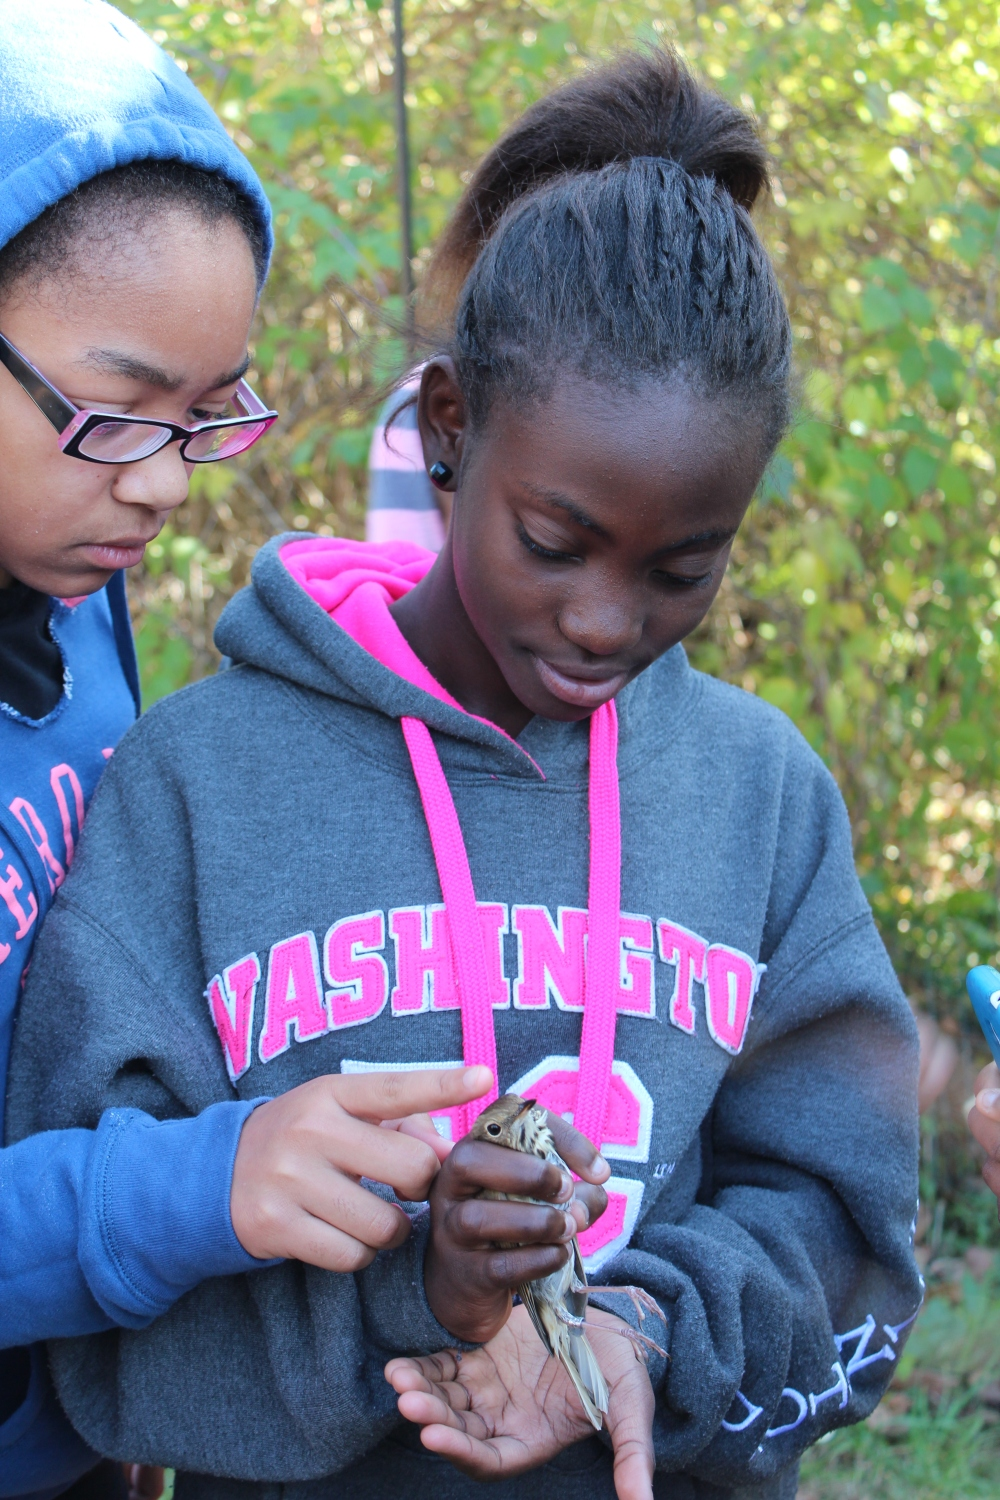 Melton students reverently observe a Swainson's Thrush before release.  Fall 2014.